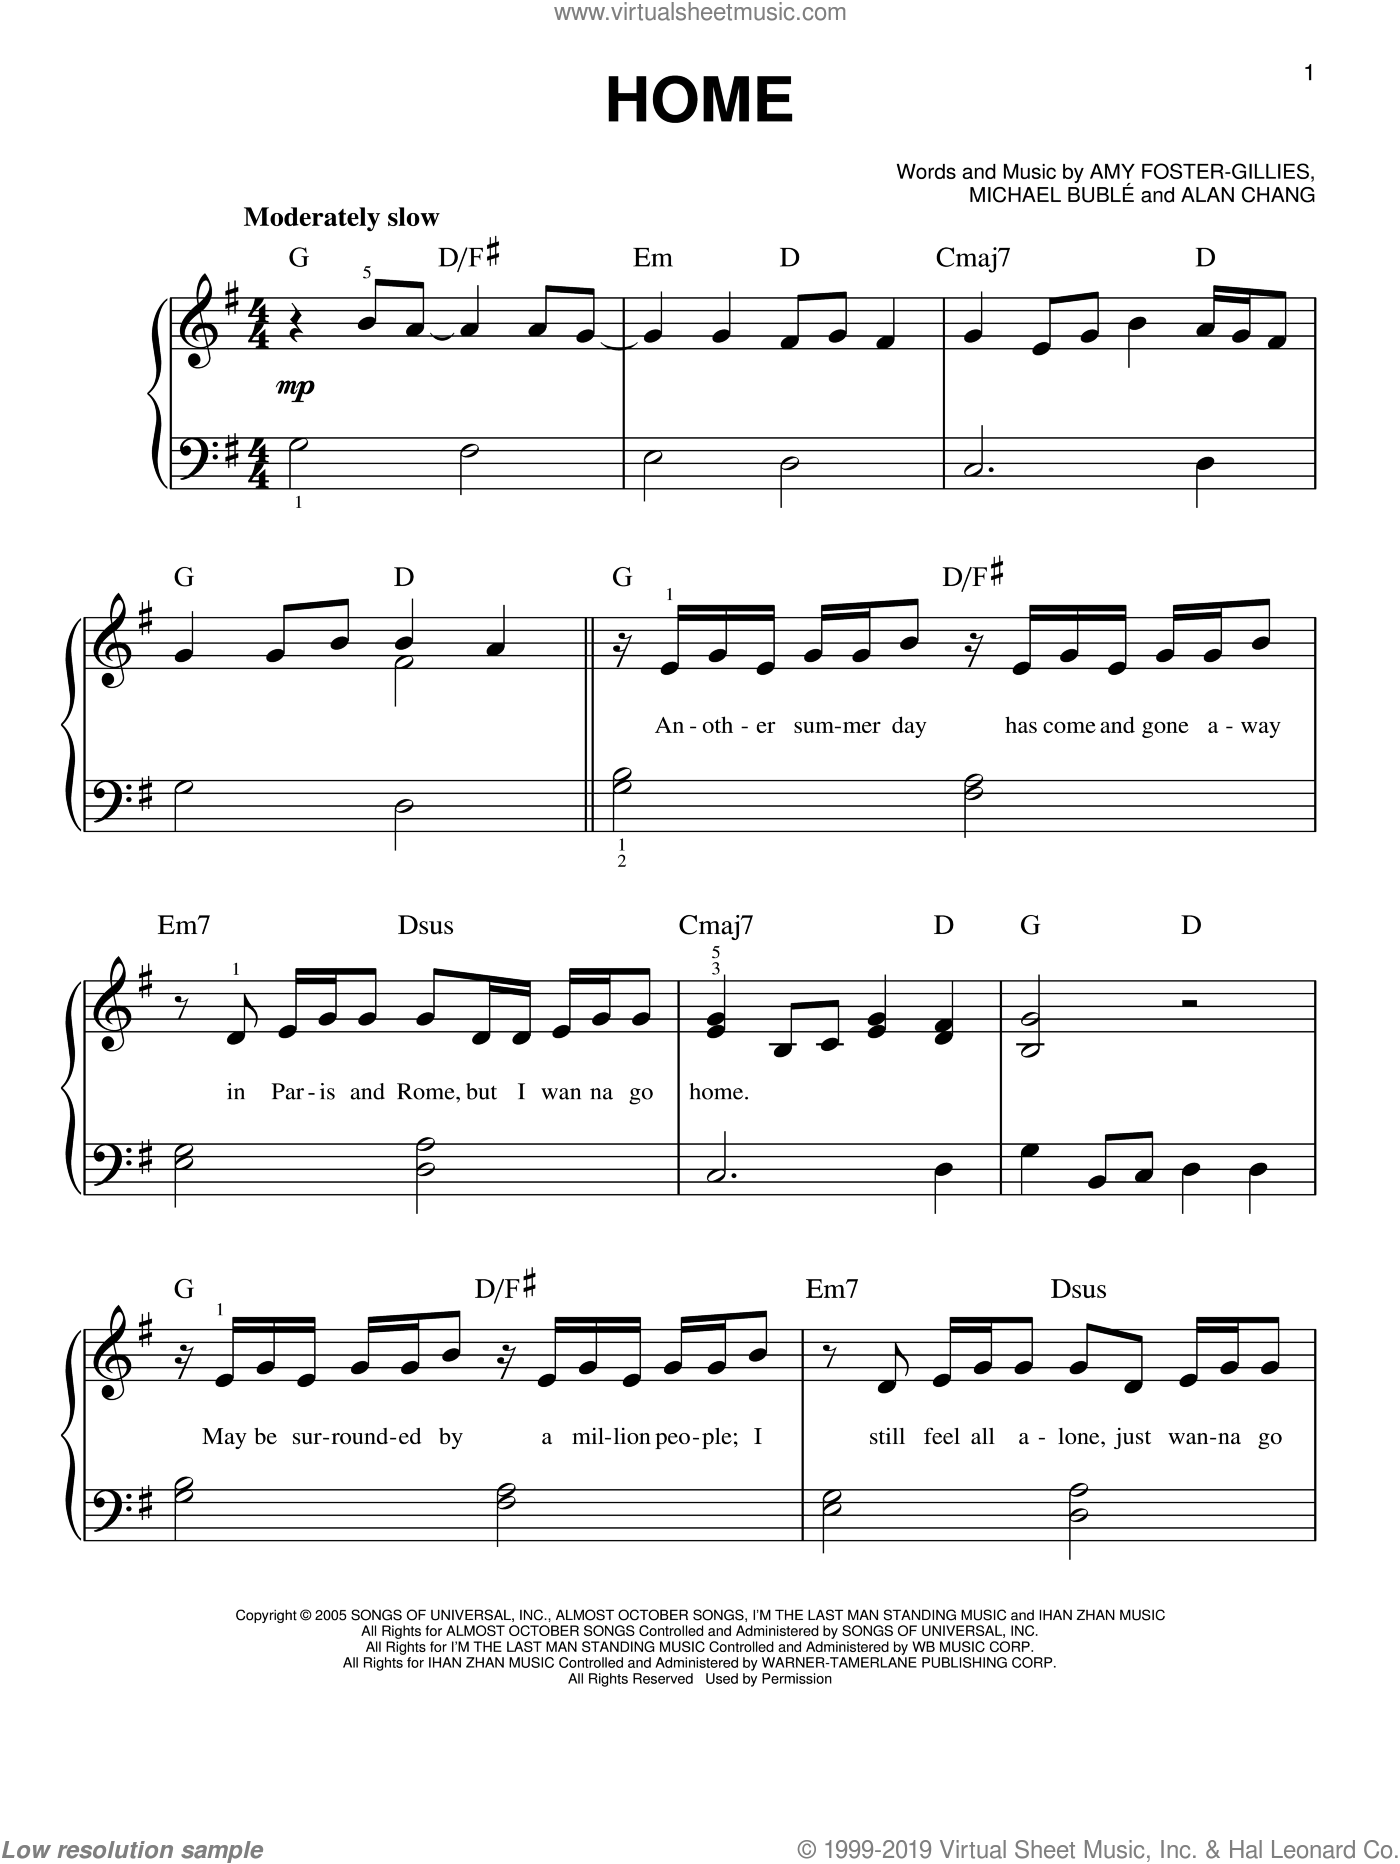 Home sheet music for piano solo by Michael Buble, Blake Shelton, Westlife, Alan Chang and Amy Foster-Gillies, beginner skill level